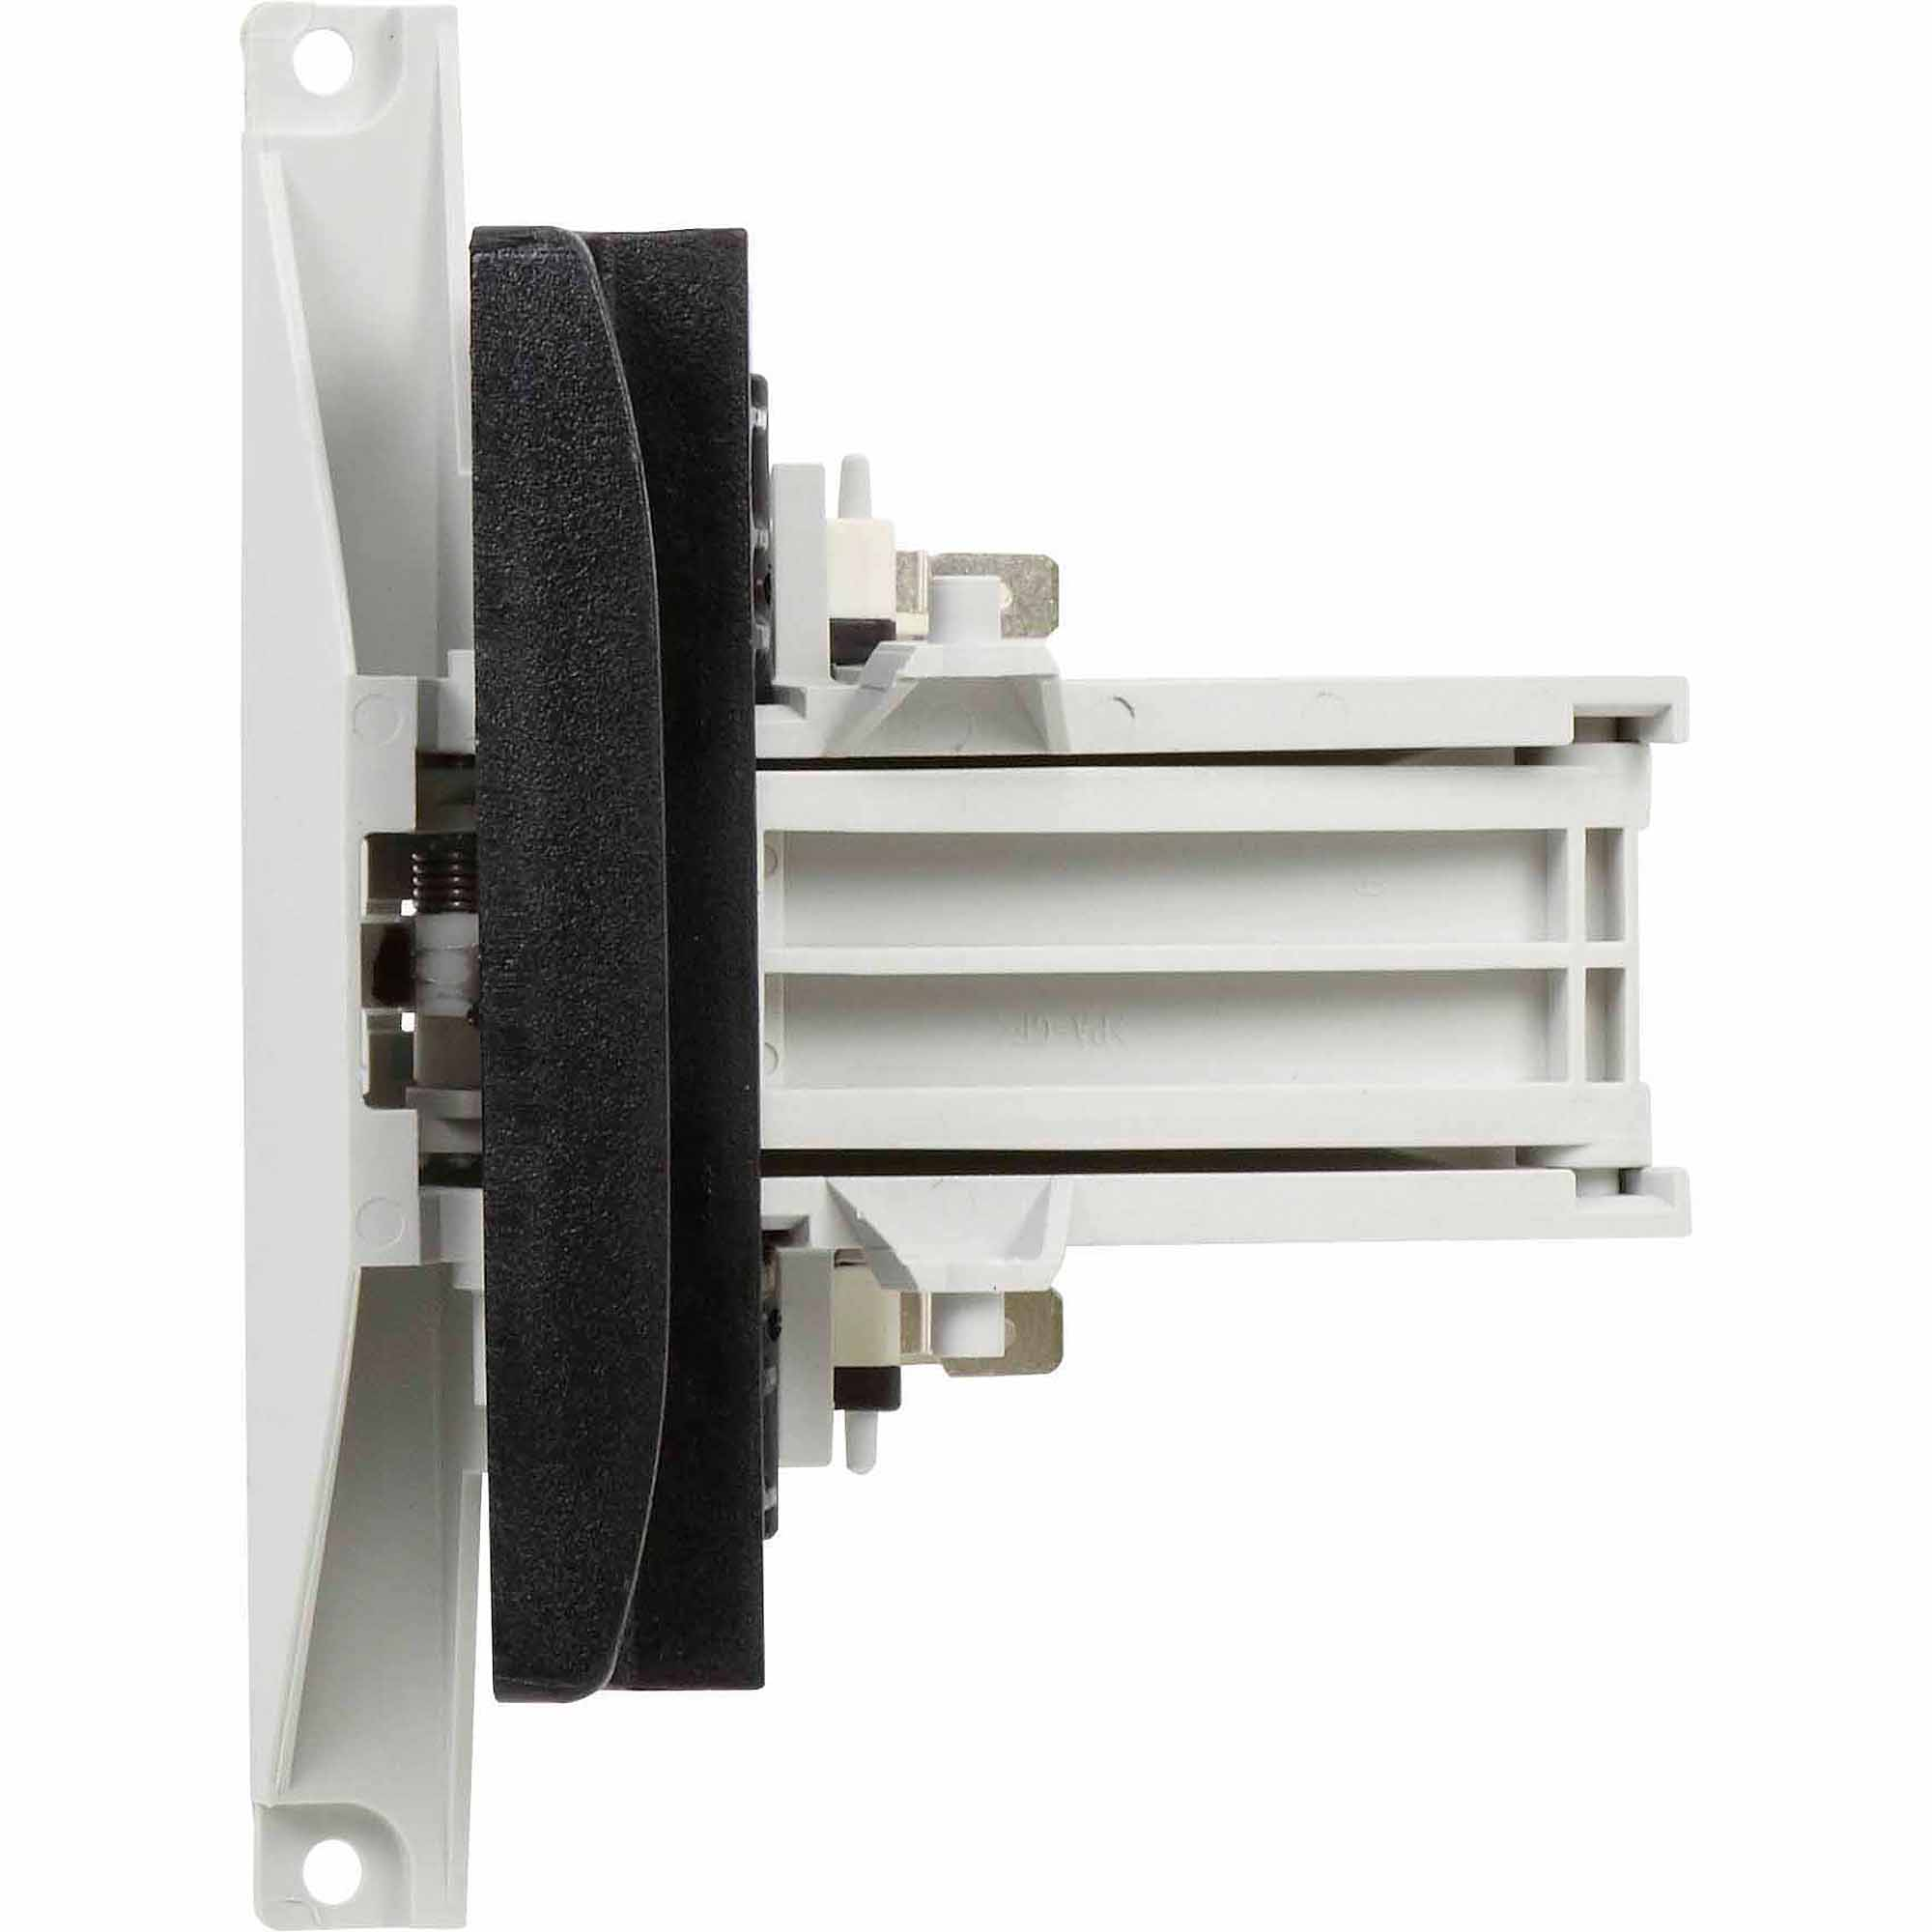 UpStart Components Brand Compatible with 8194001 Door Balance Link Kit 8194001 Dishwasher Door Balance Kit Replacement for Kenmore//Sears 66517462300 Dishwasher